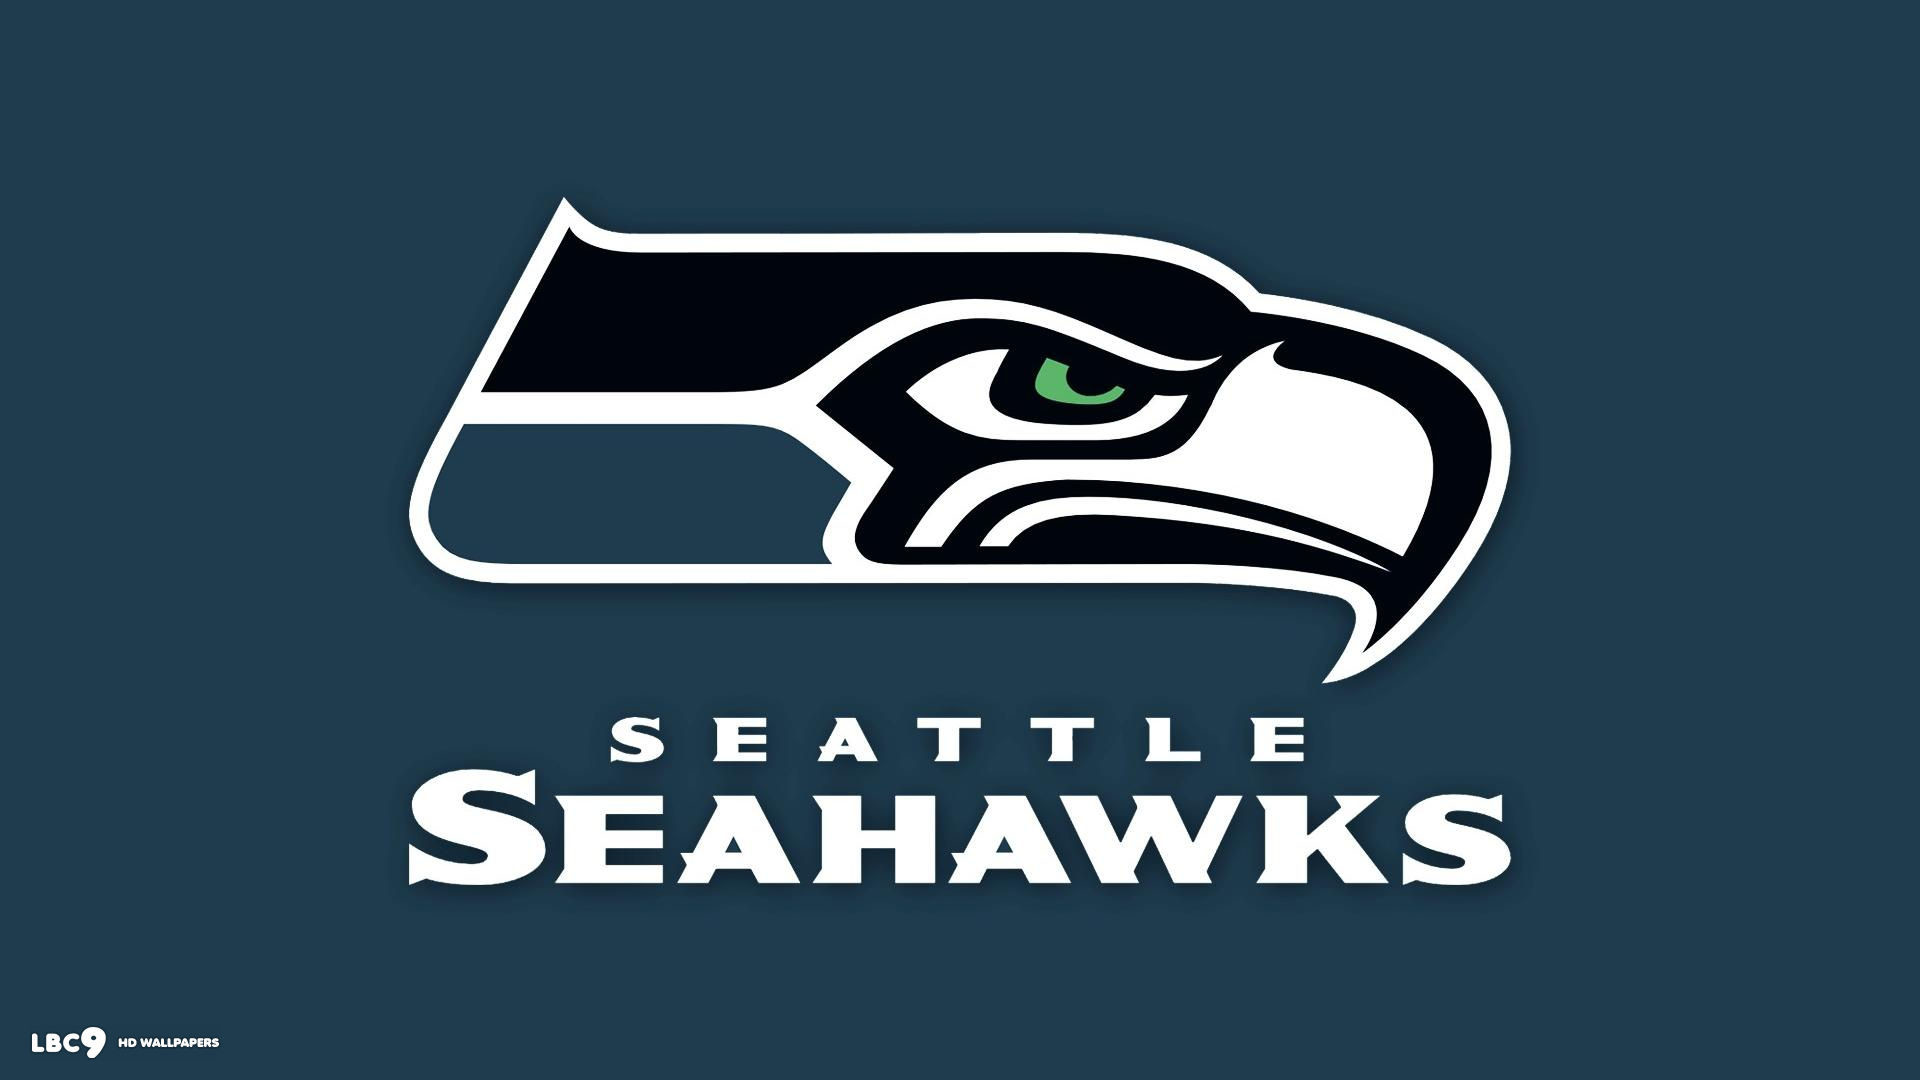 Seattle Seahawks Wallpaper Images 72